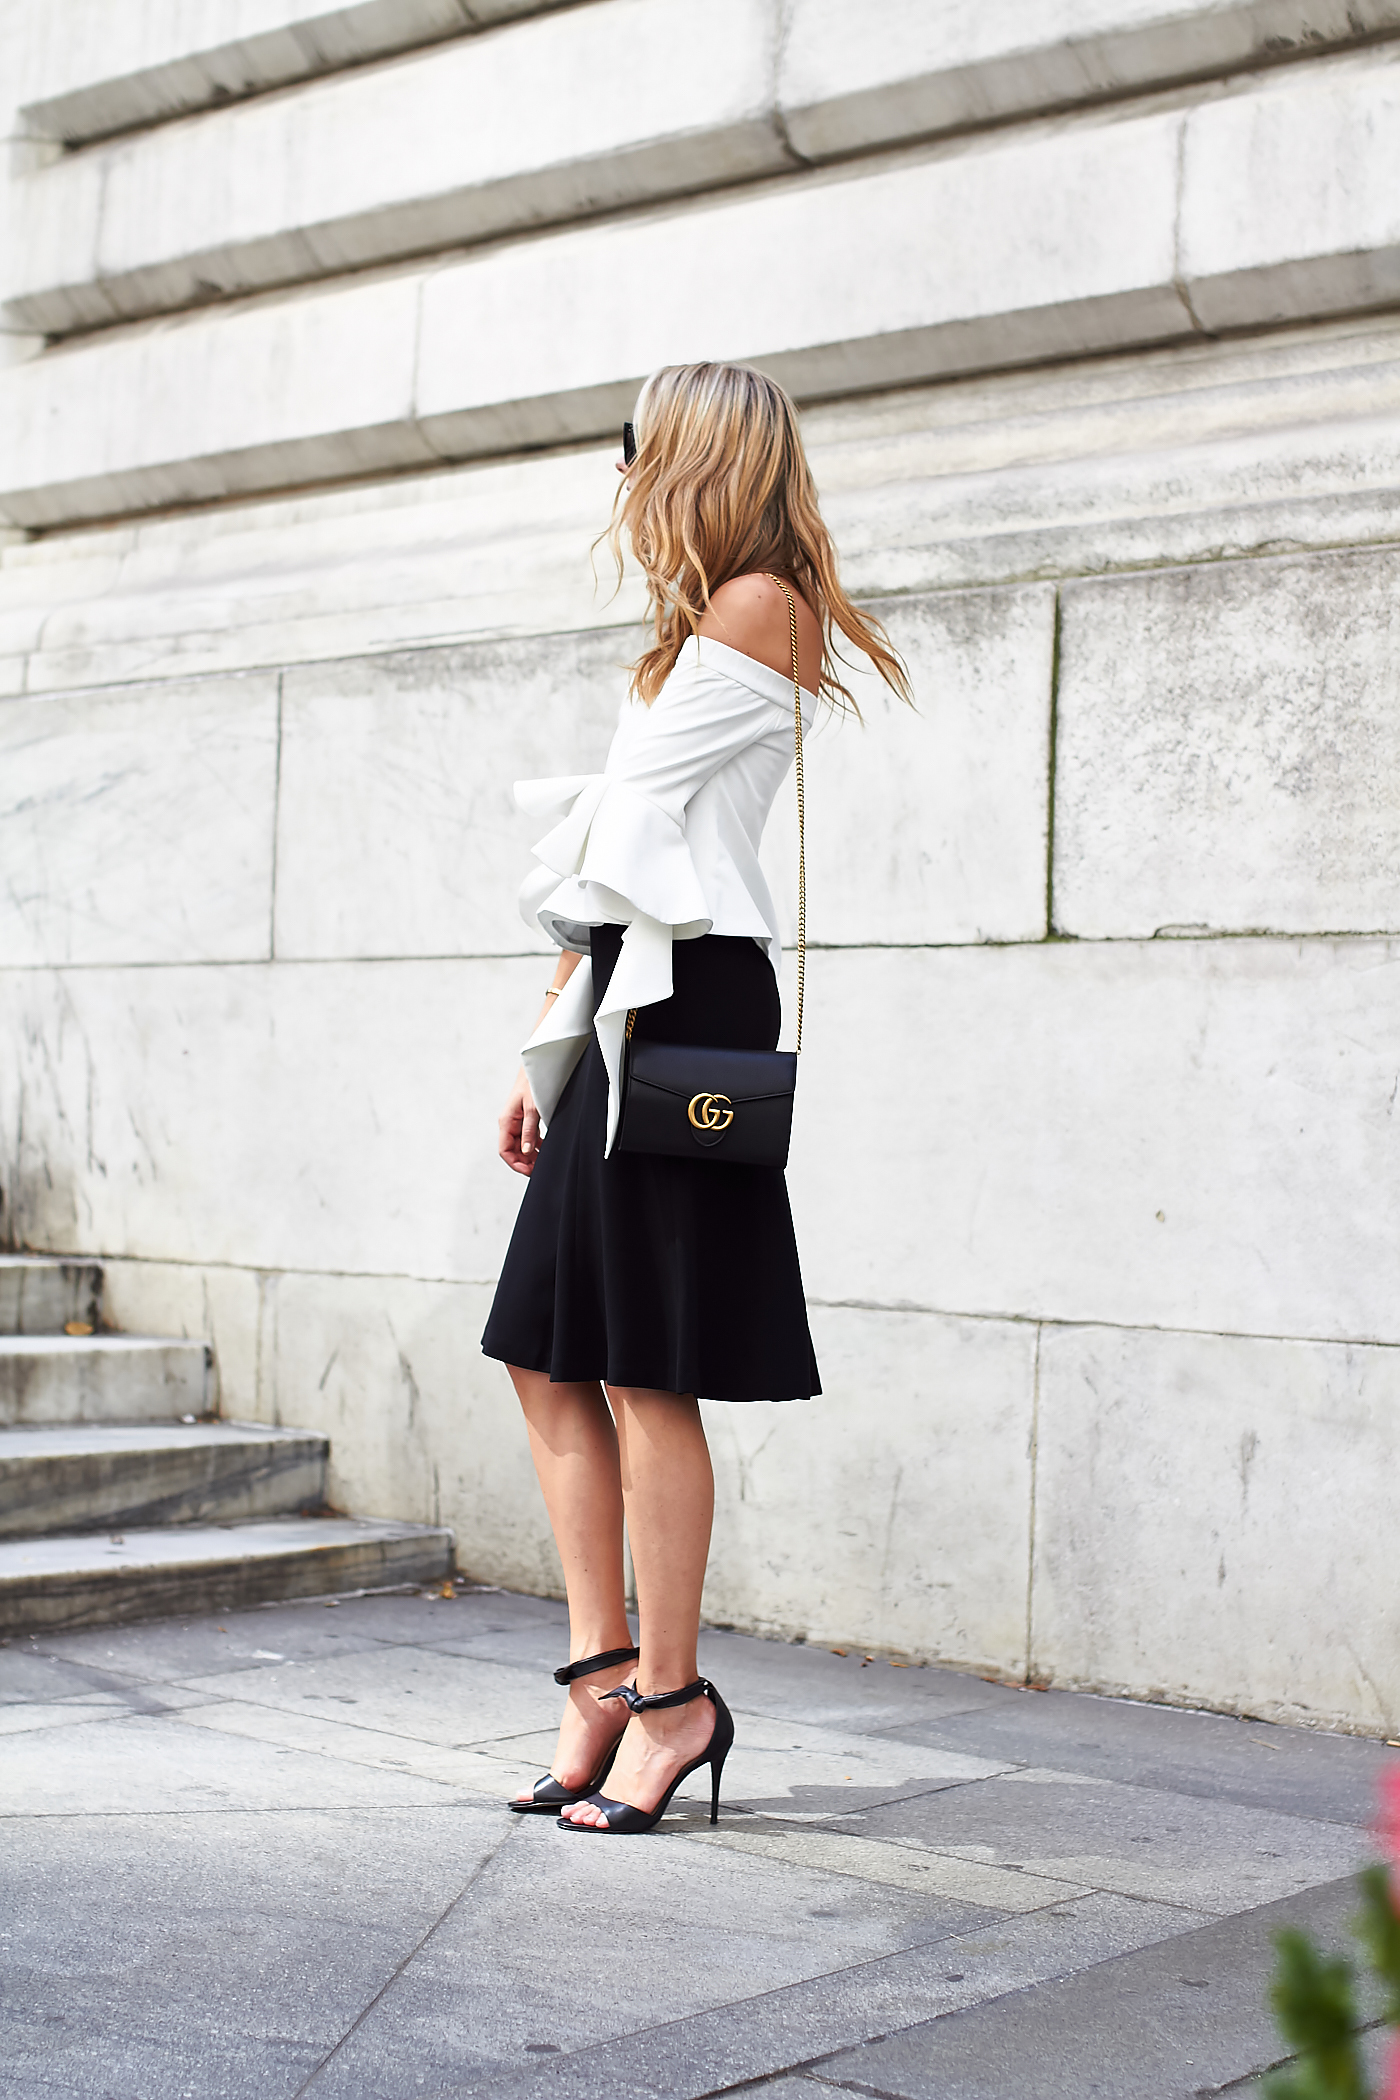 fashion-jackson-white-off-the-shoulder-top-black-midi-skirt-gucci-marmont-handbag